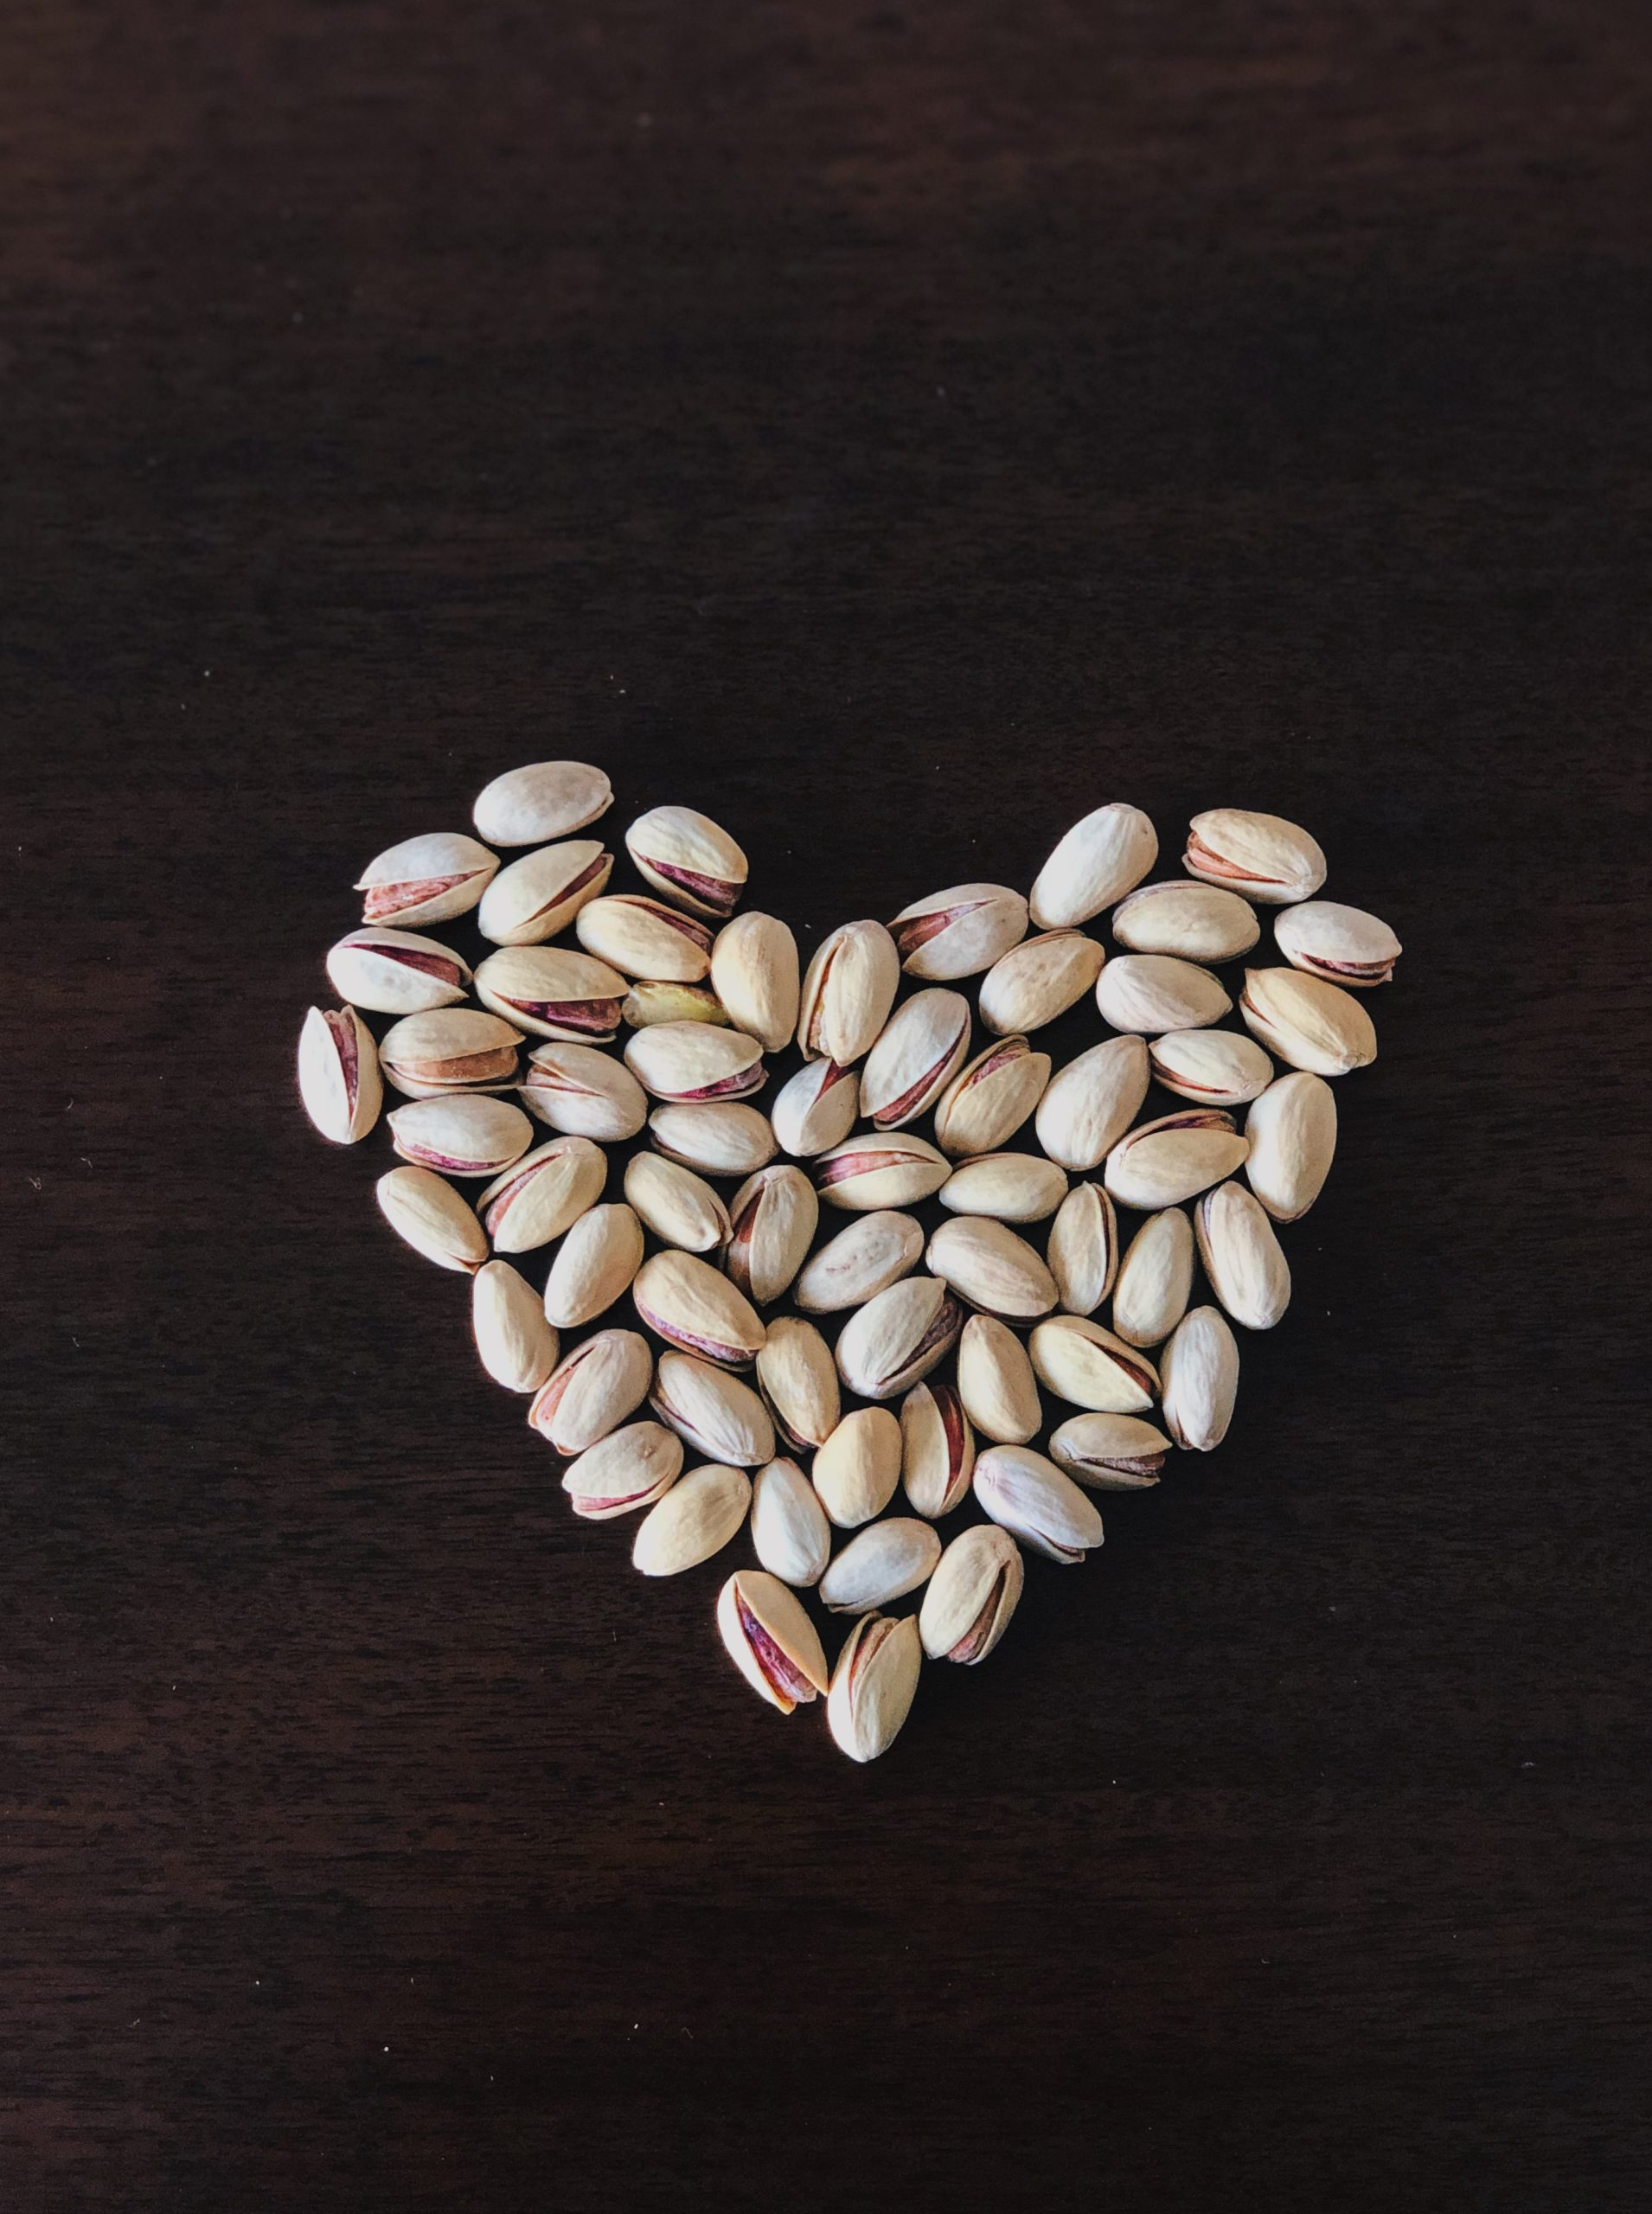 Roasted and salted pistachios in a heart shape